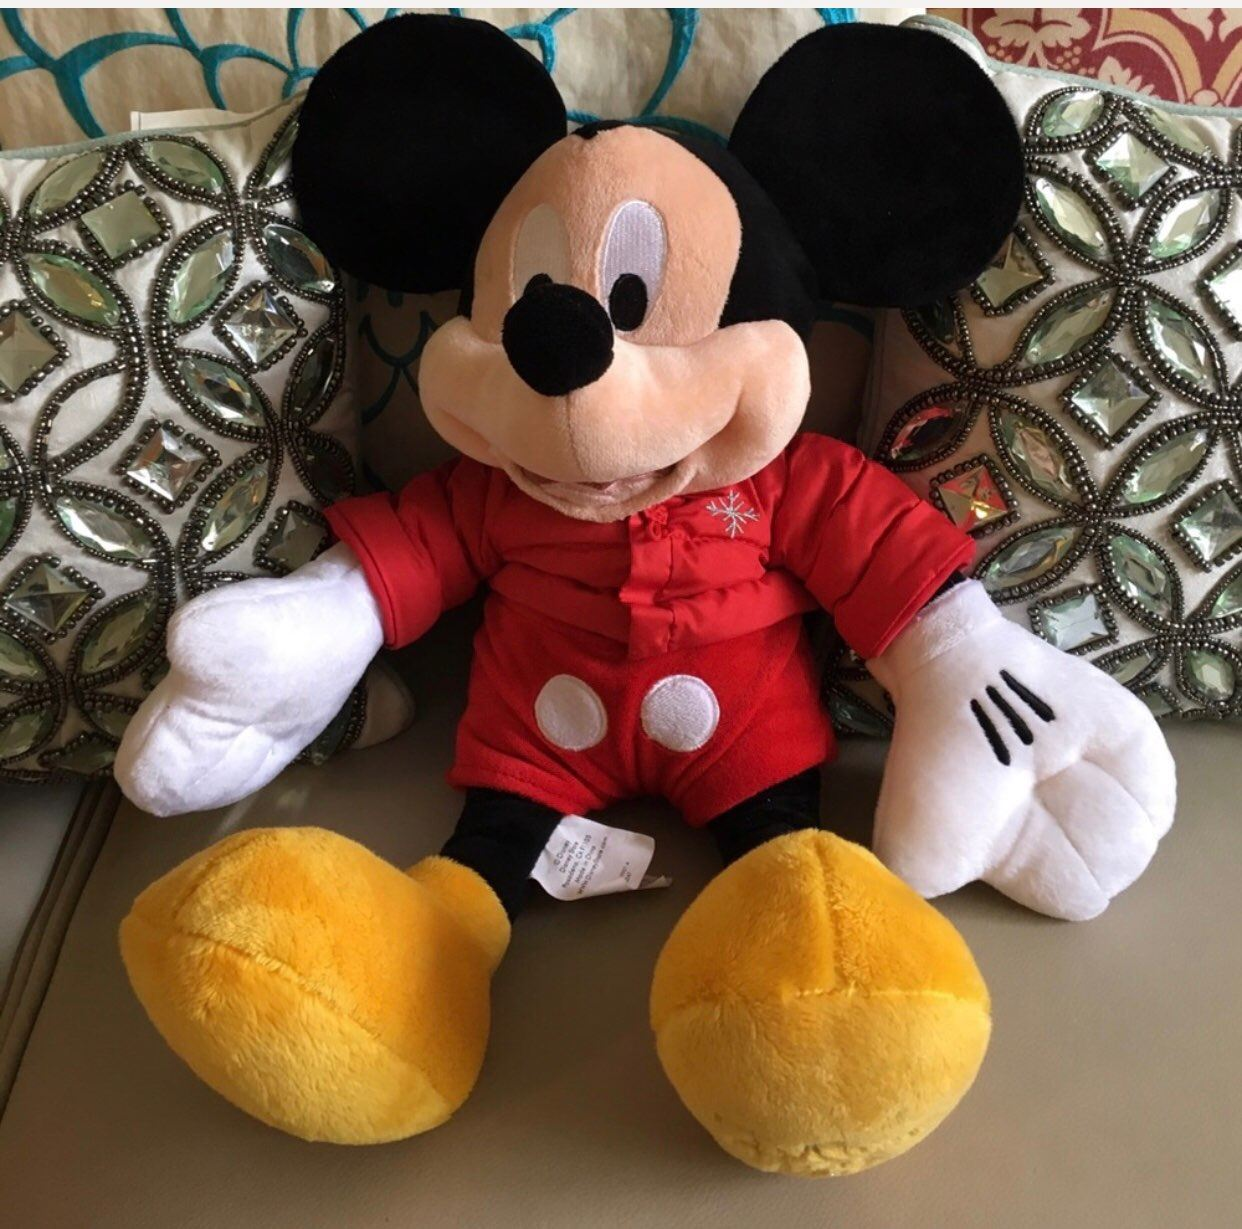 Disney 2010 Mickey Mouse Posh 16 Inch